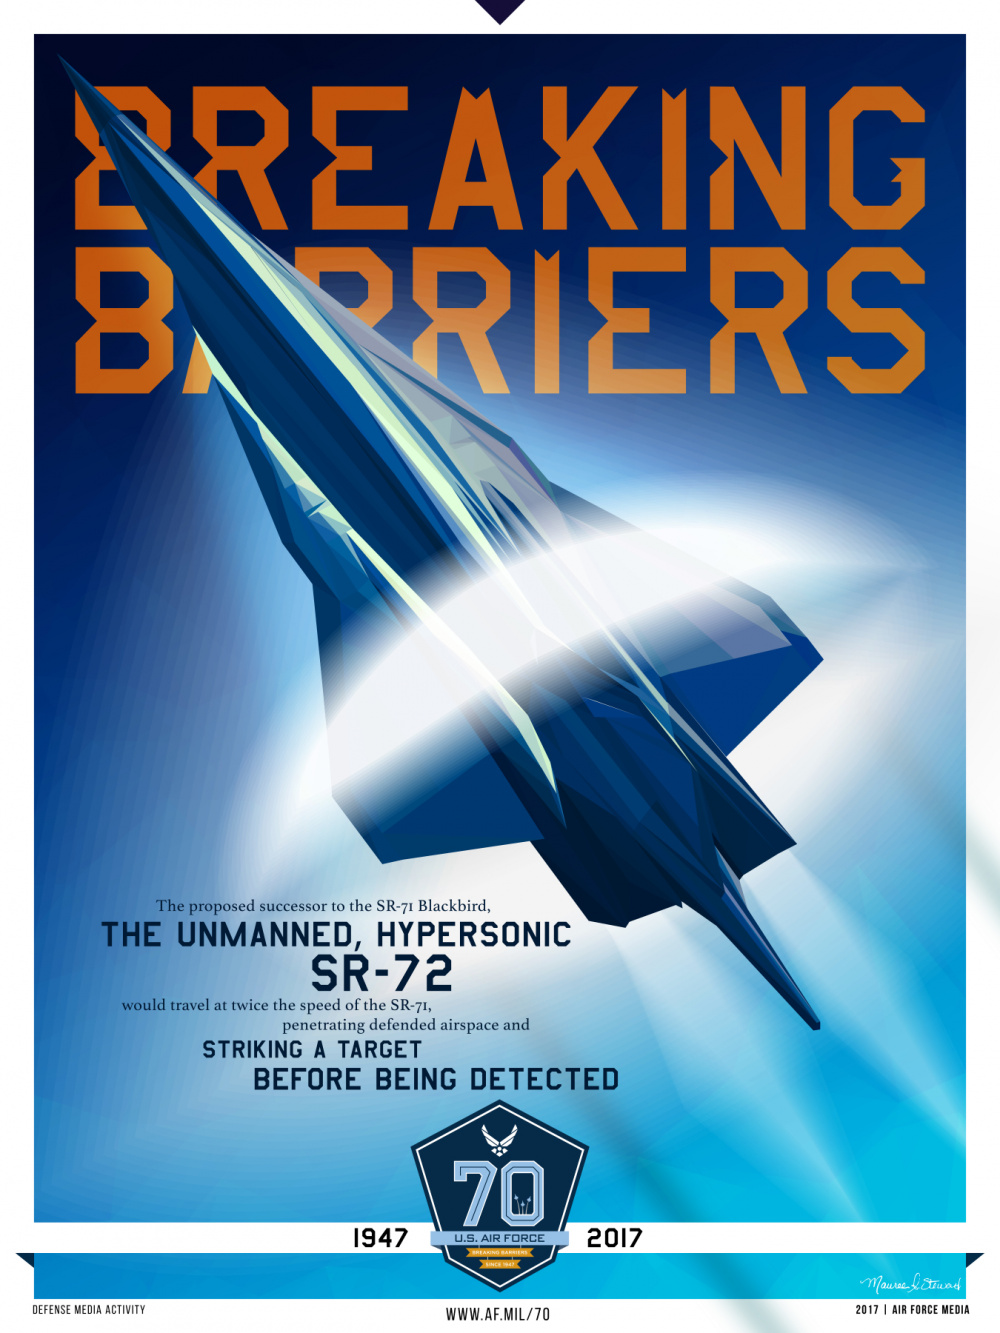 Breaking Barriers-the SR-72 (8 of 8)